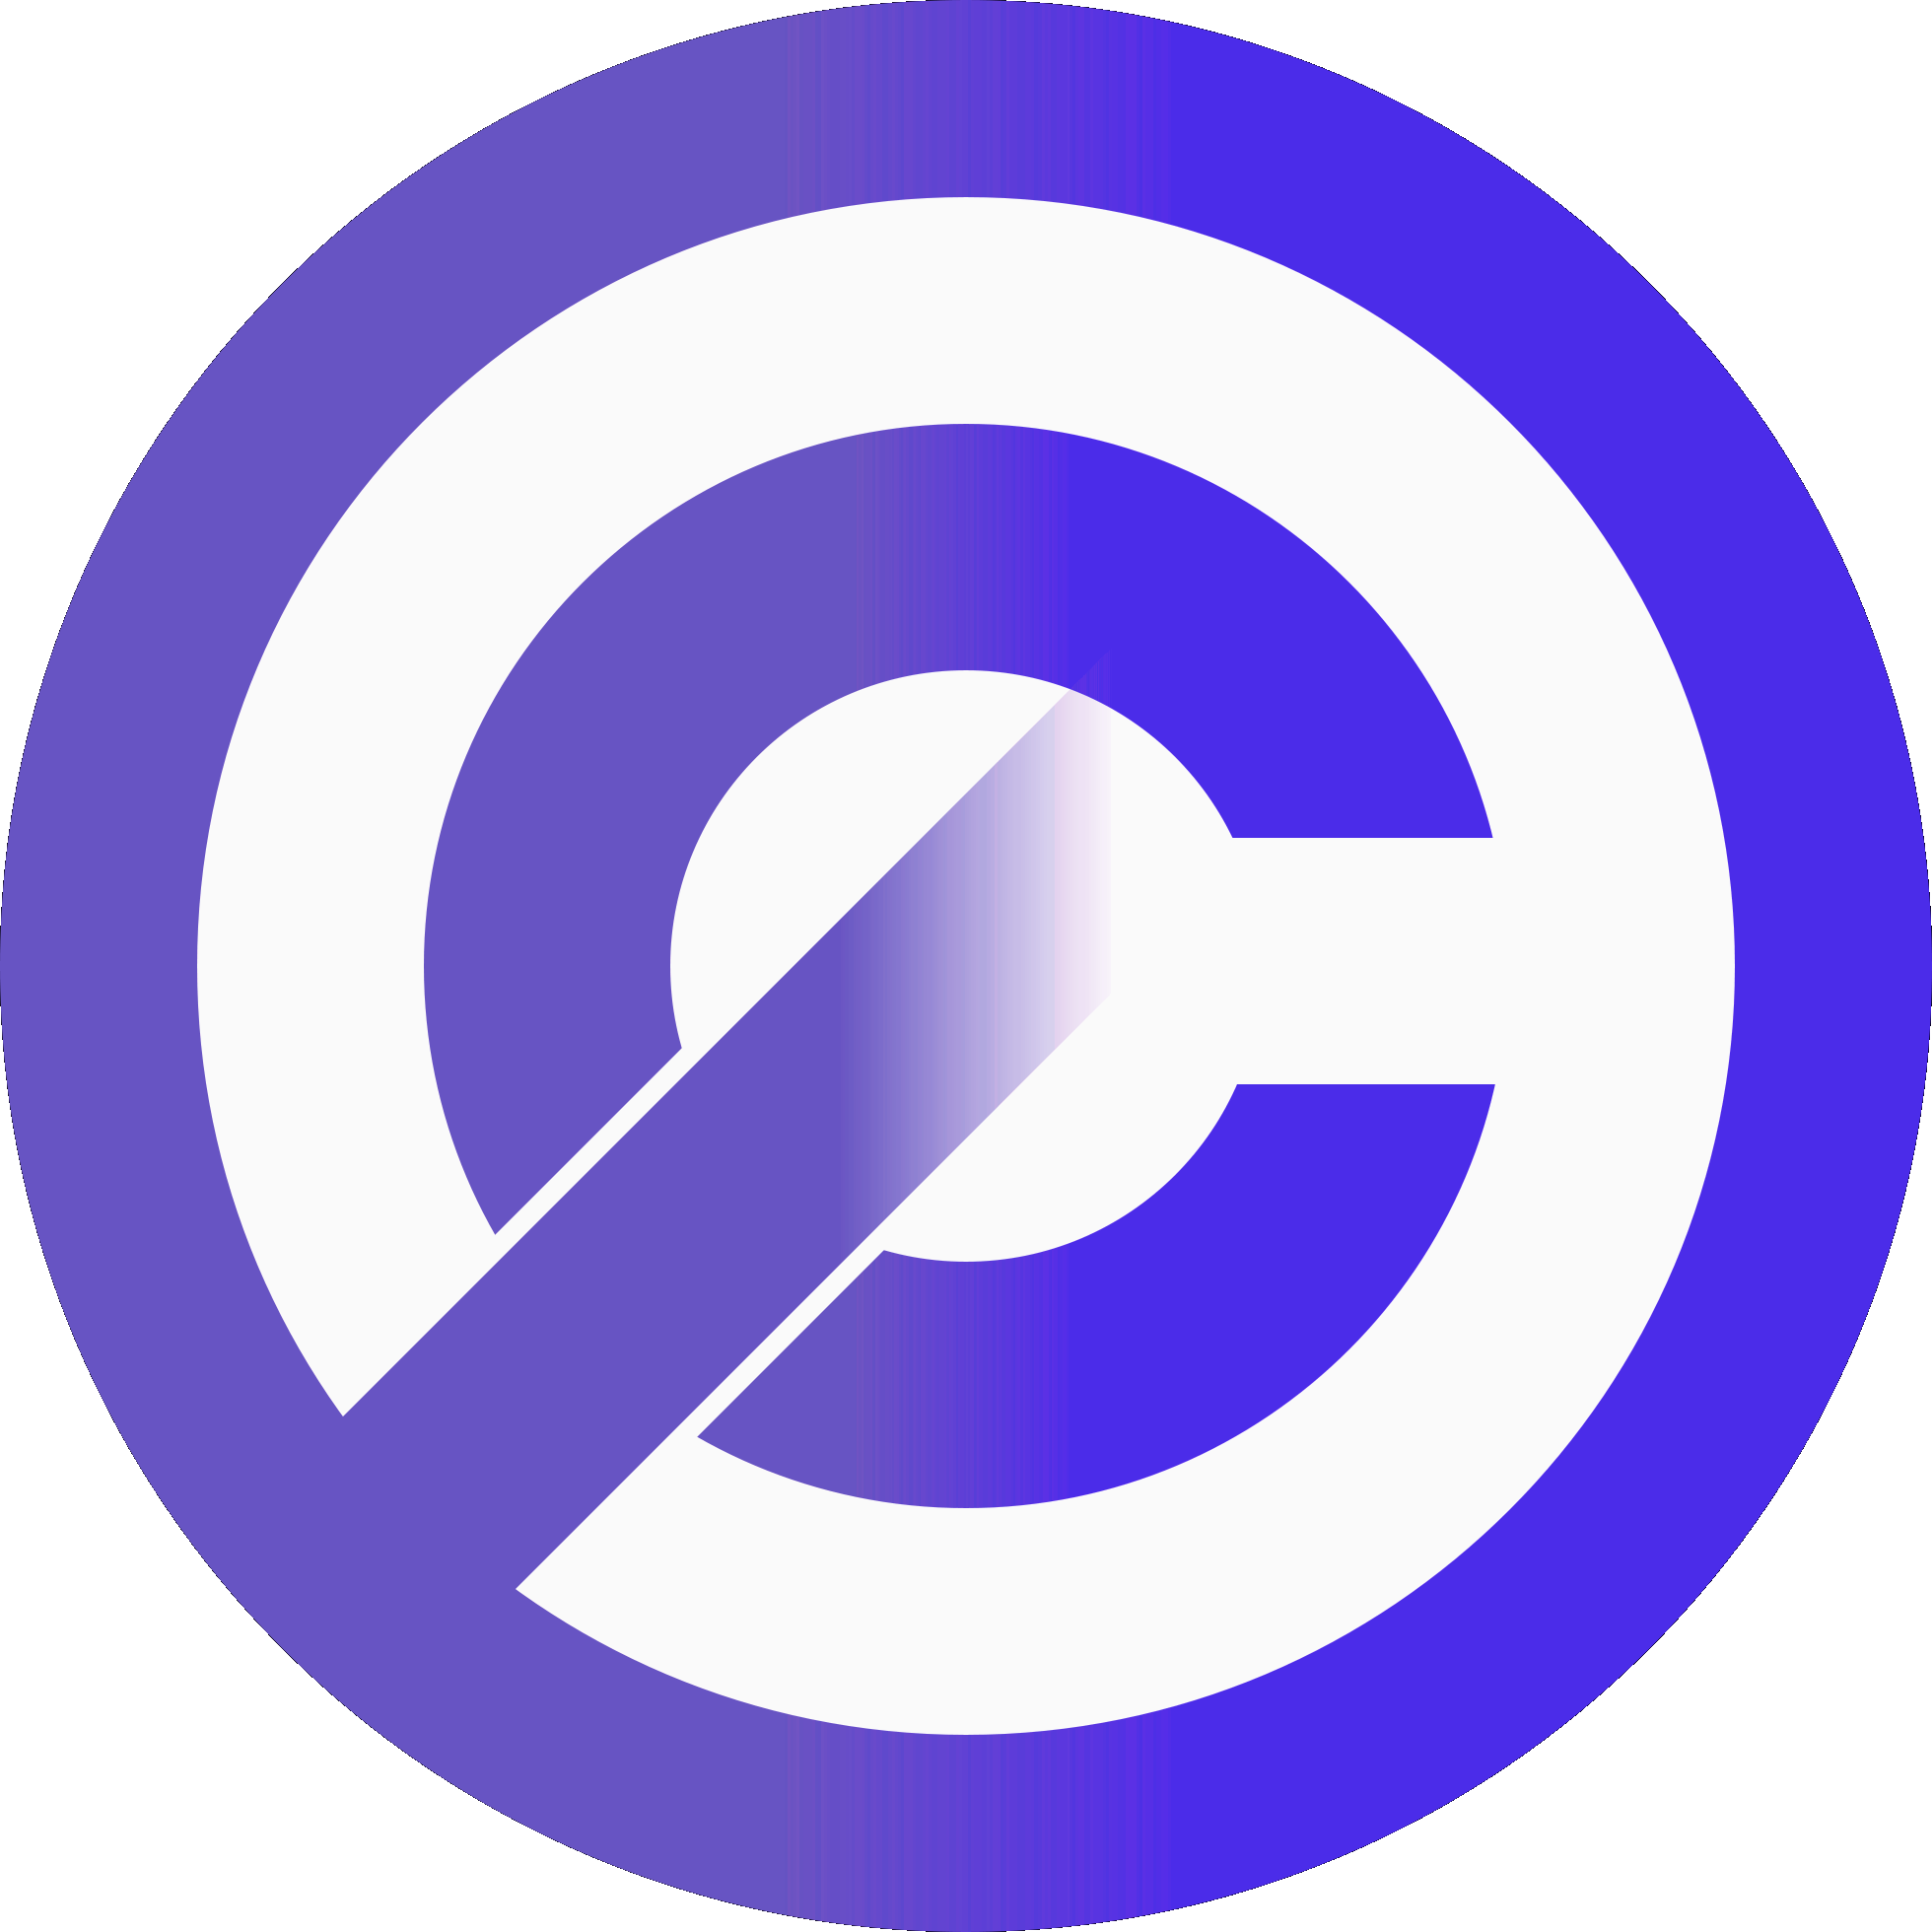 File:Pdproject-logo-blank.png - Wikimedia Commons